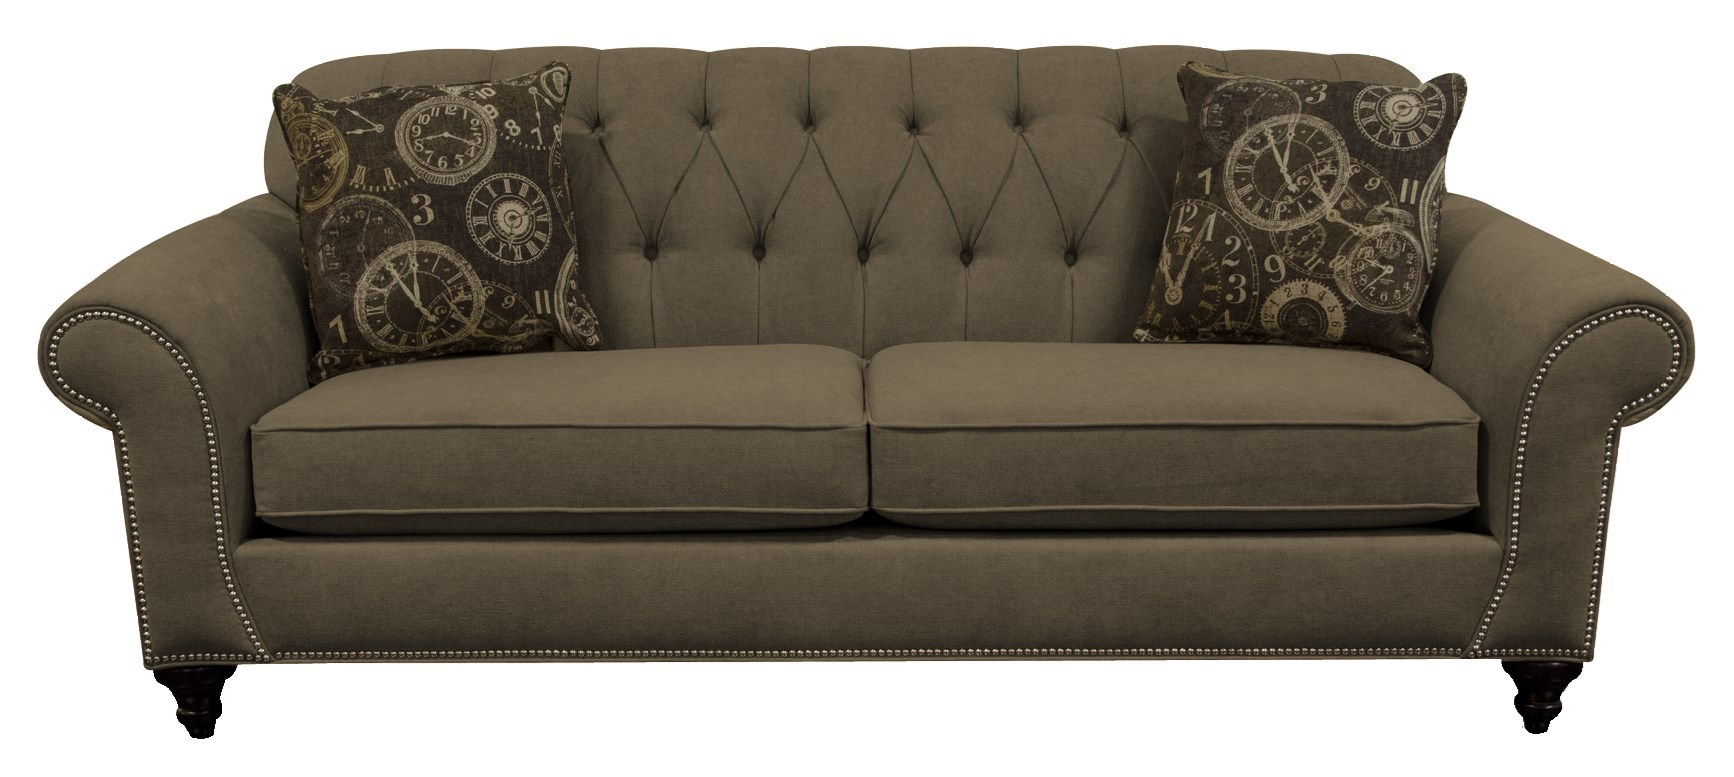 England Stacy Sofa with Nailheads and Button Tufted Seat Back - Jordanu0026#39;s Home Furnishings - Sofa ...